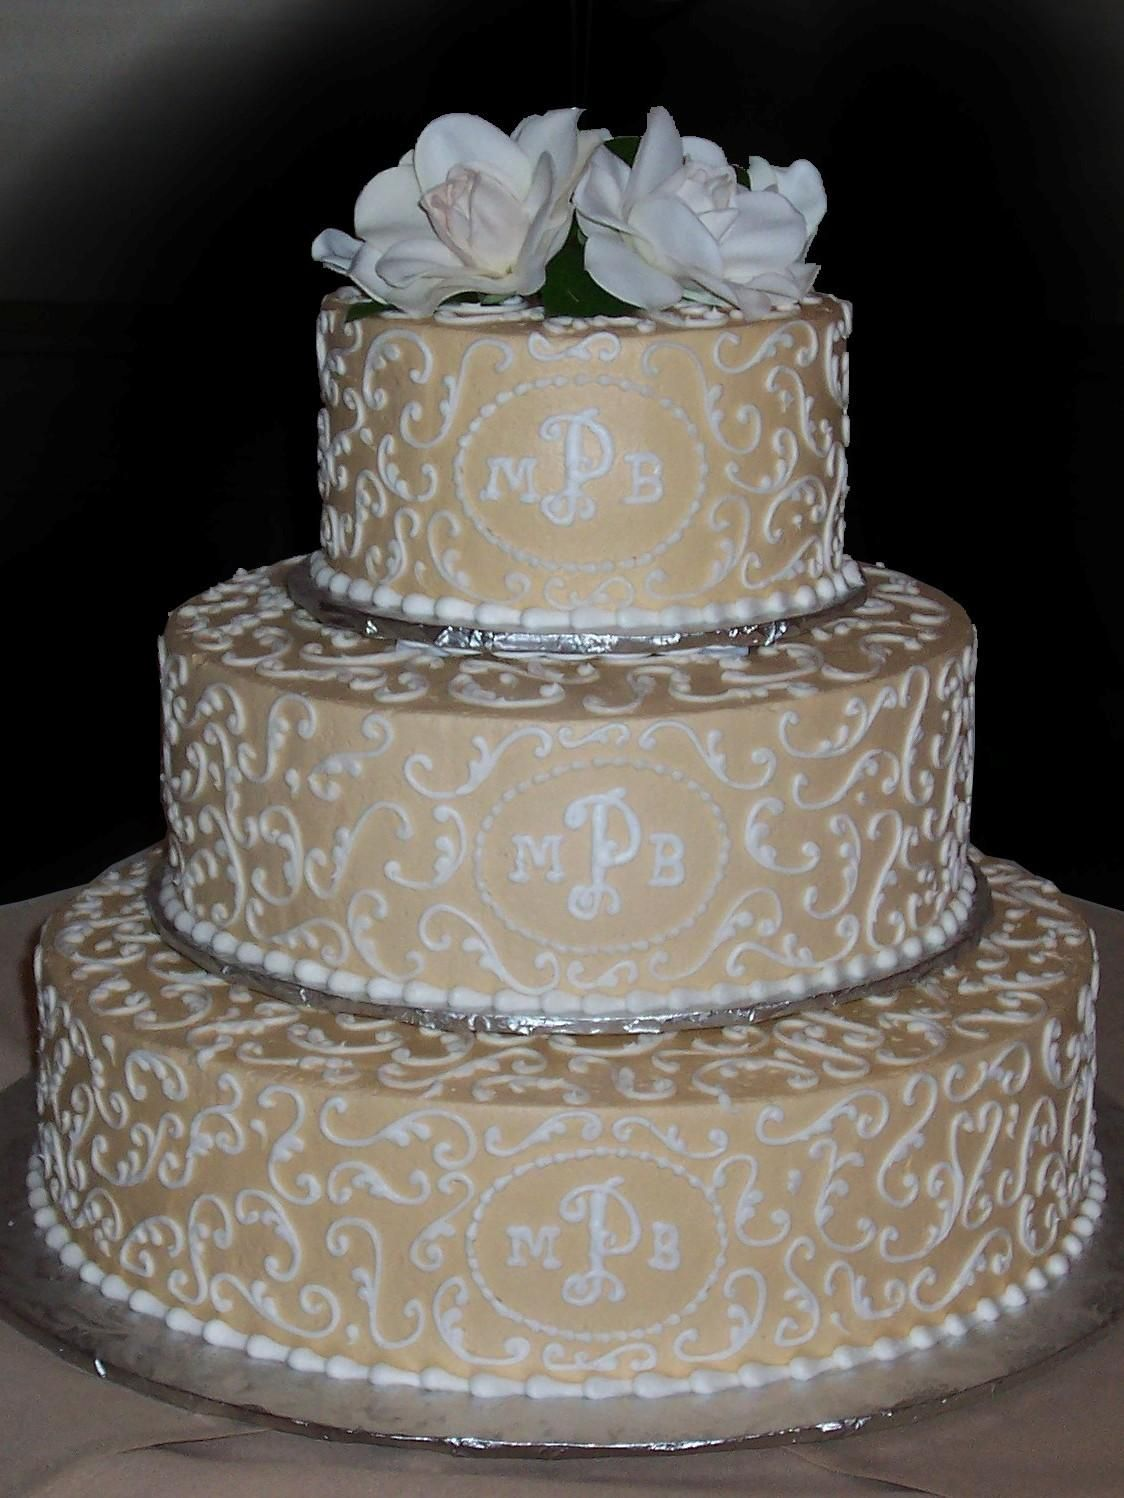 Champagne gold buttercream iced 3 tiered wedding cake